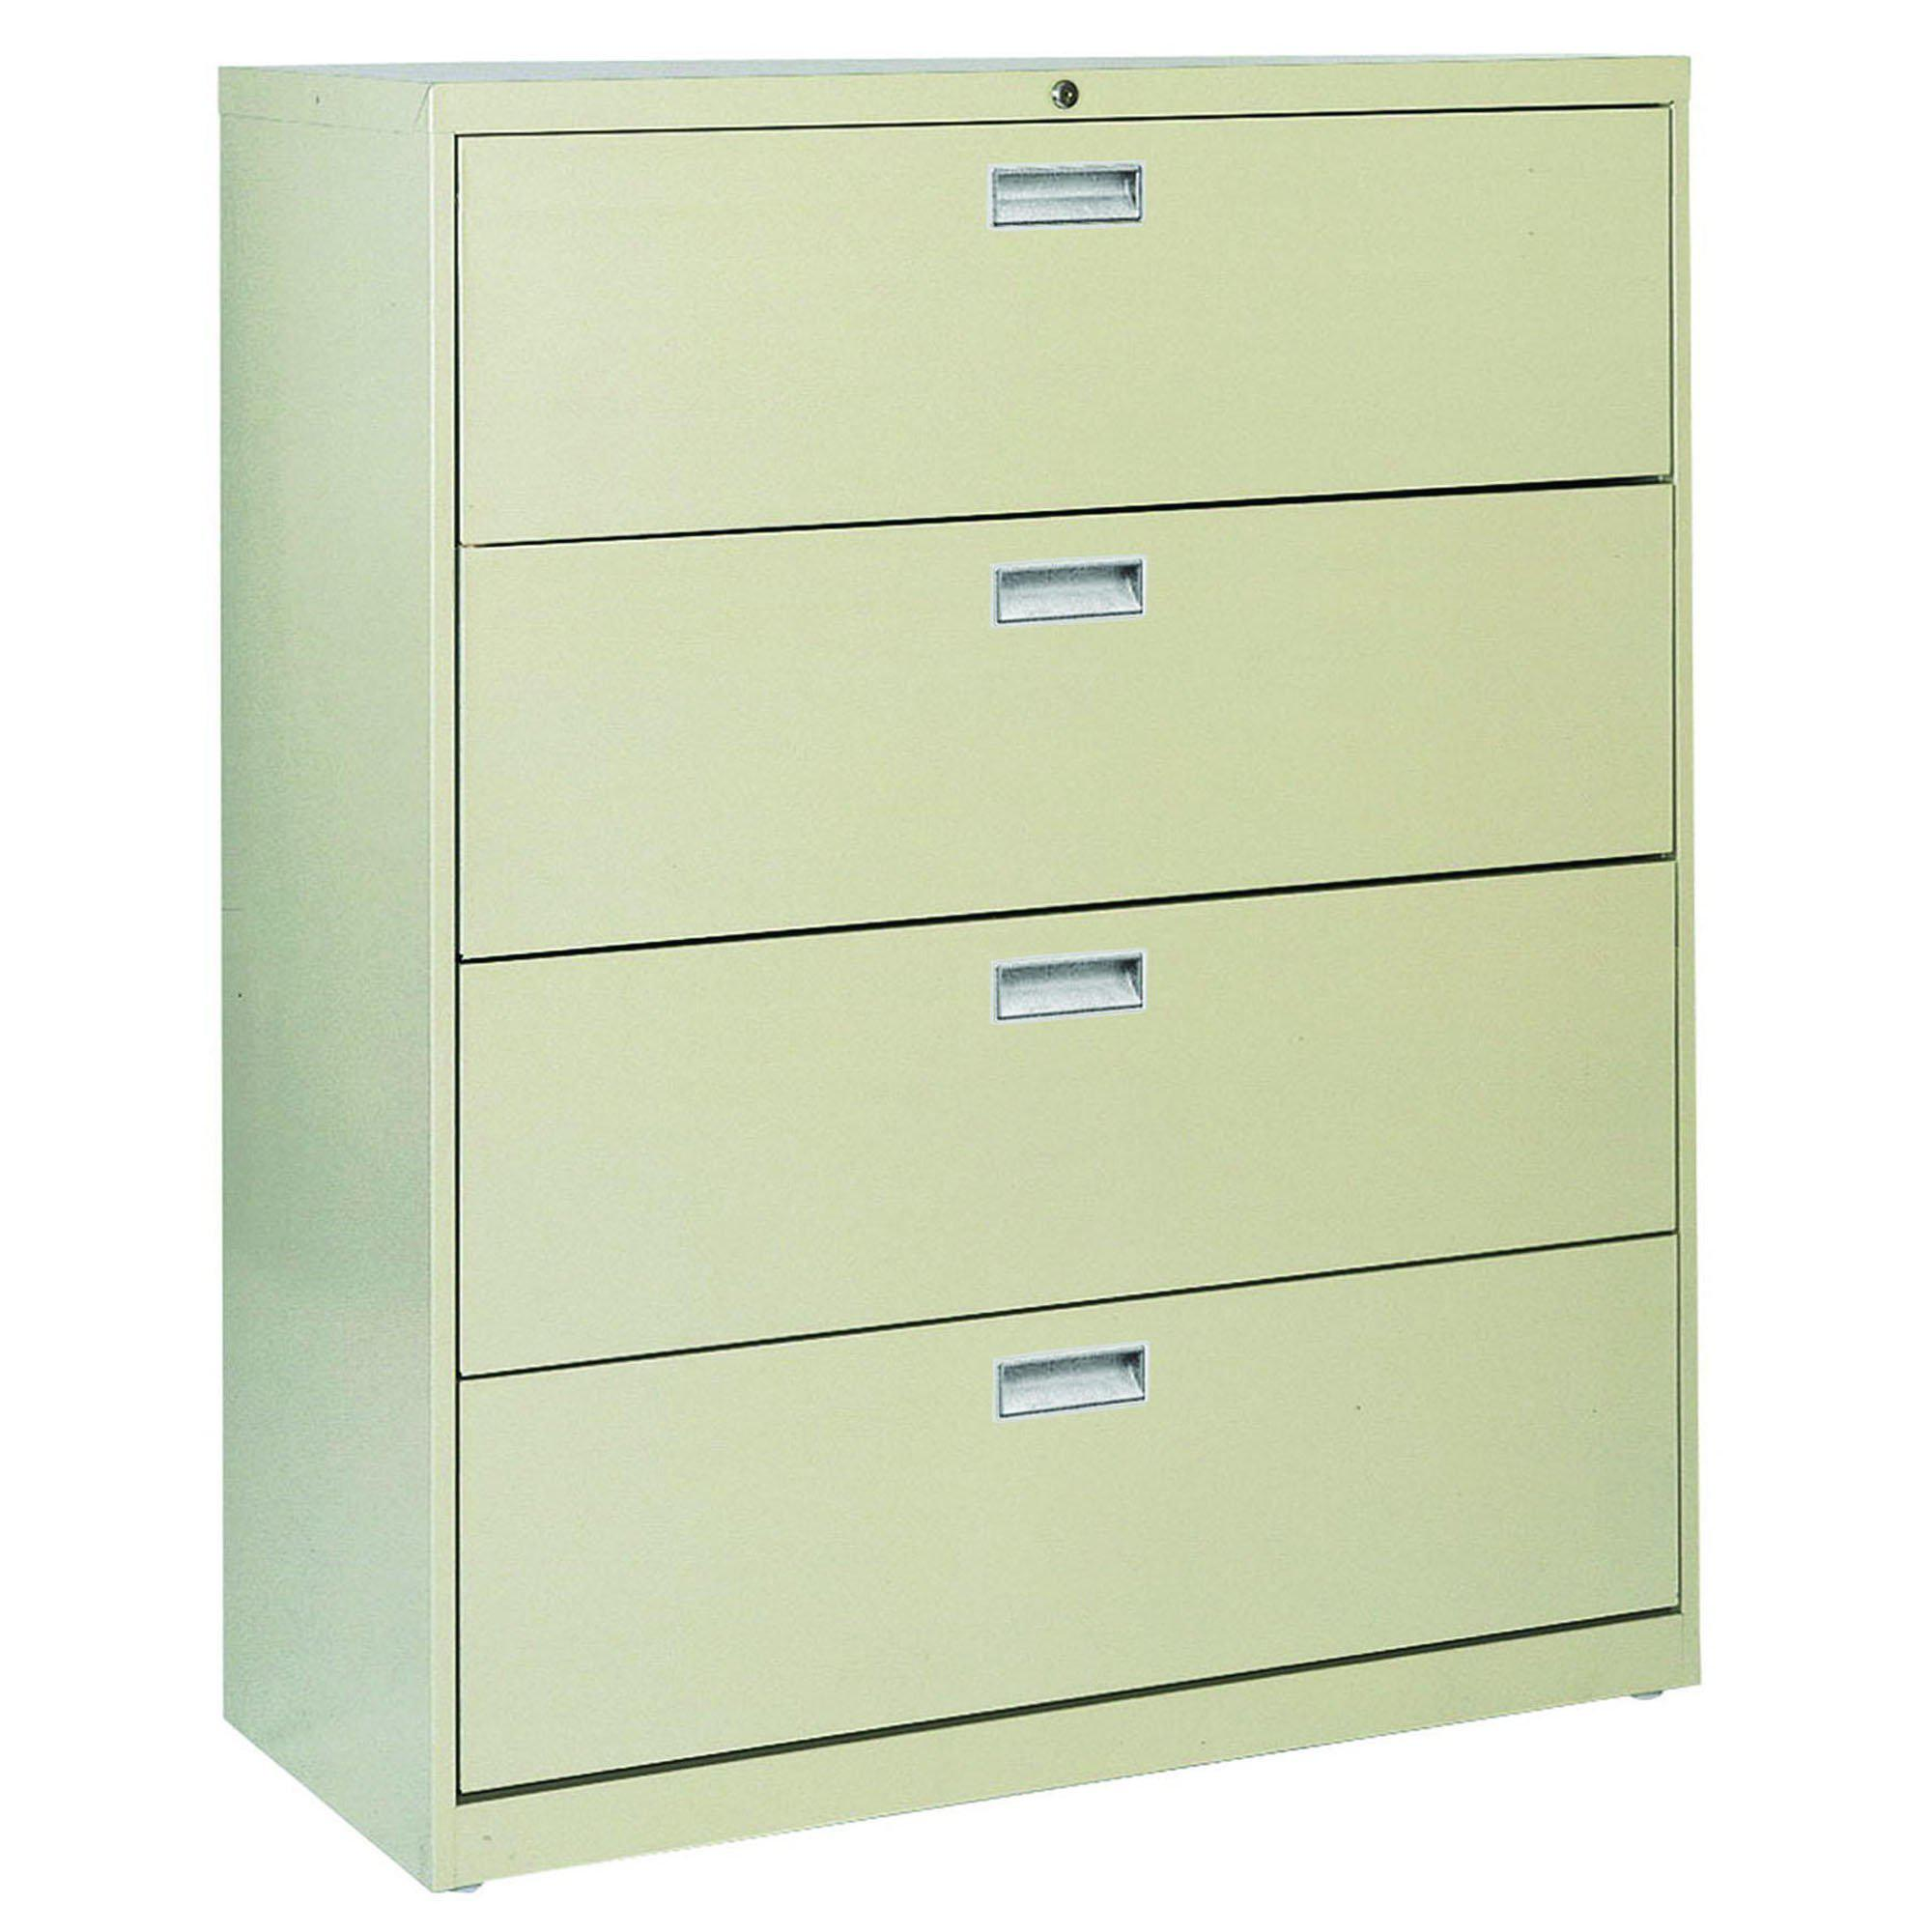 600 Series Lateral File, 4 Drawer, 42 x 19.25 x 53.25, Putty